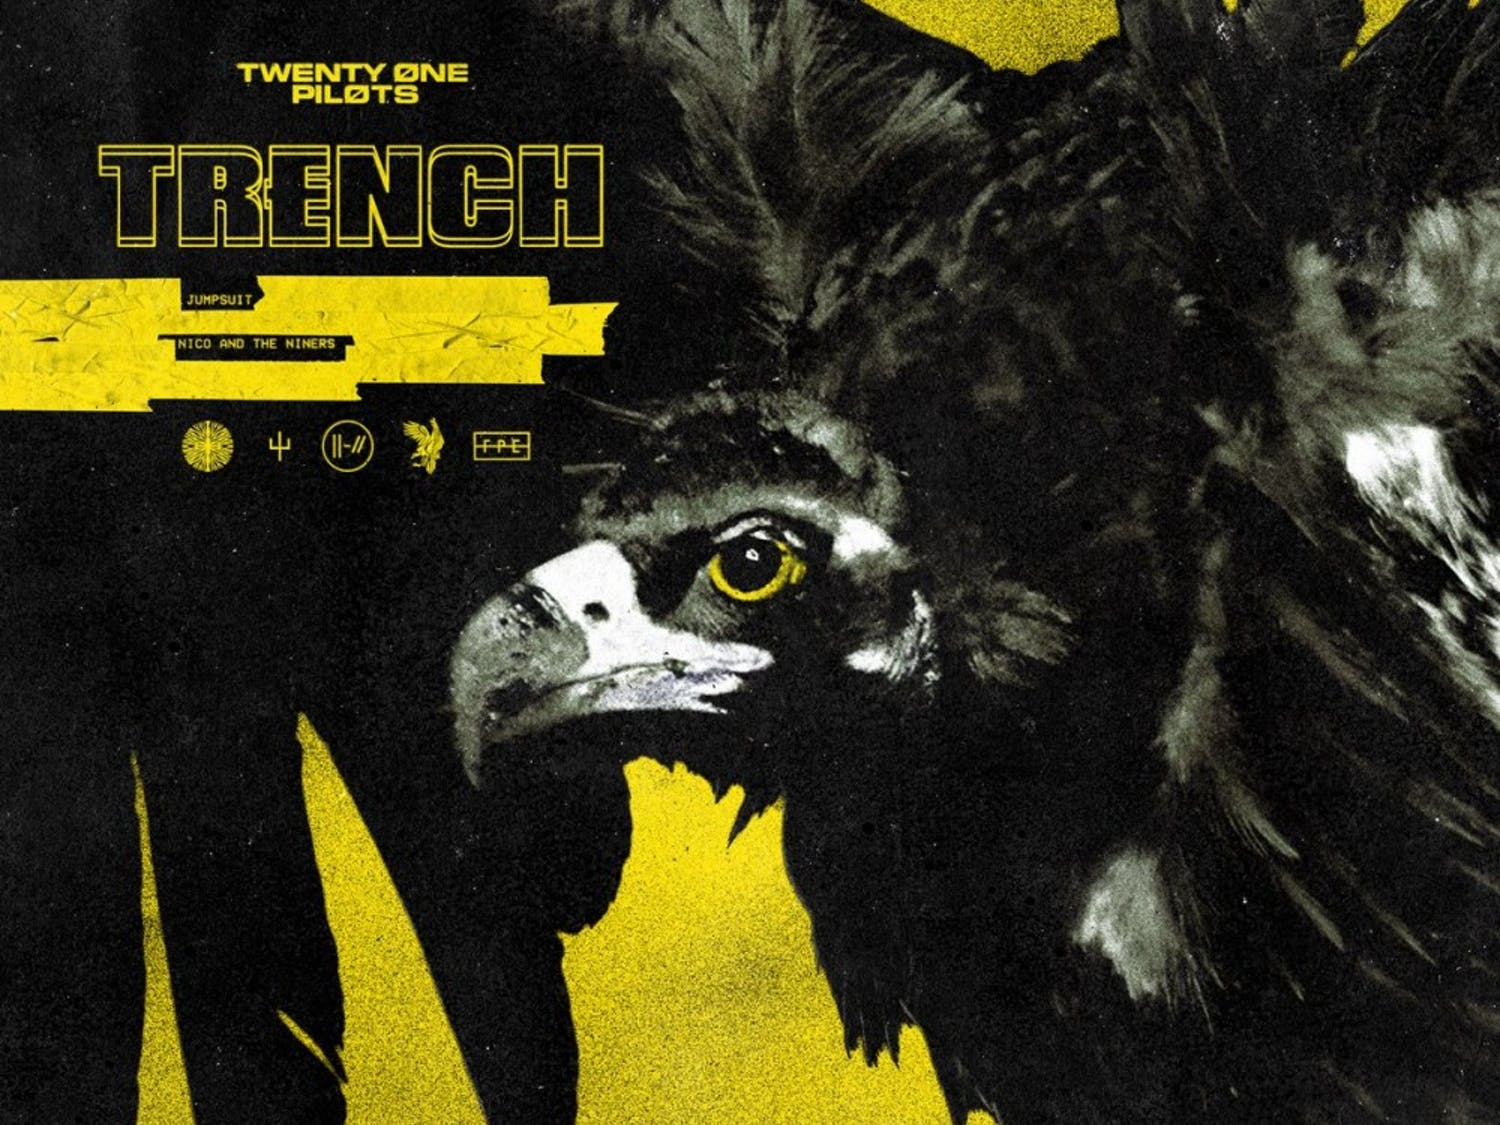 With Trench, Twenty One Pilots have created a full-formed project with lots of replay value.